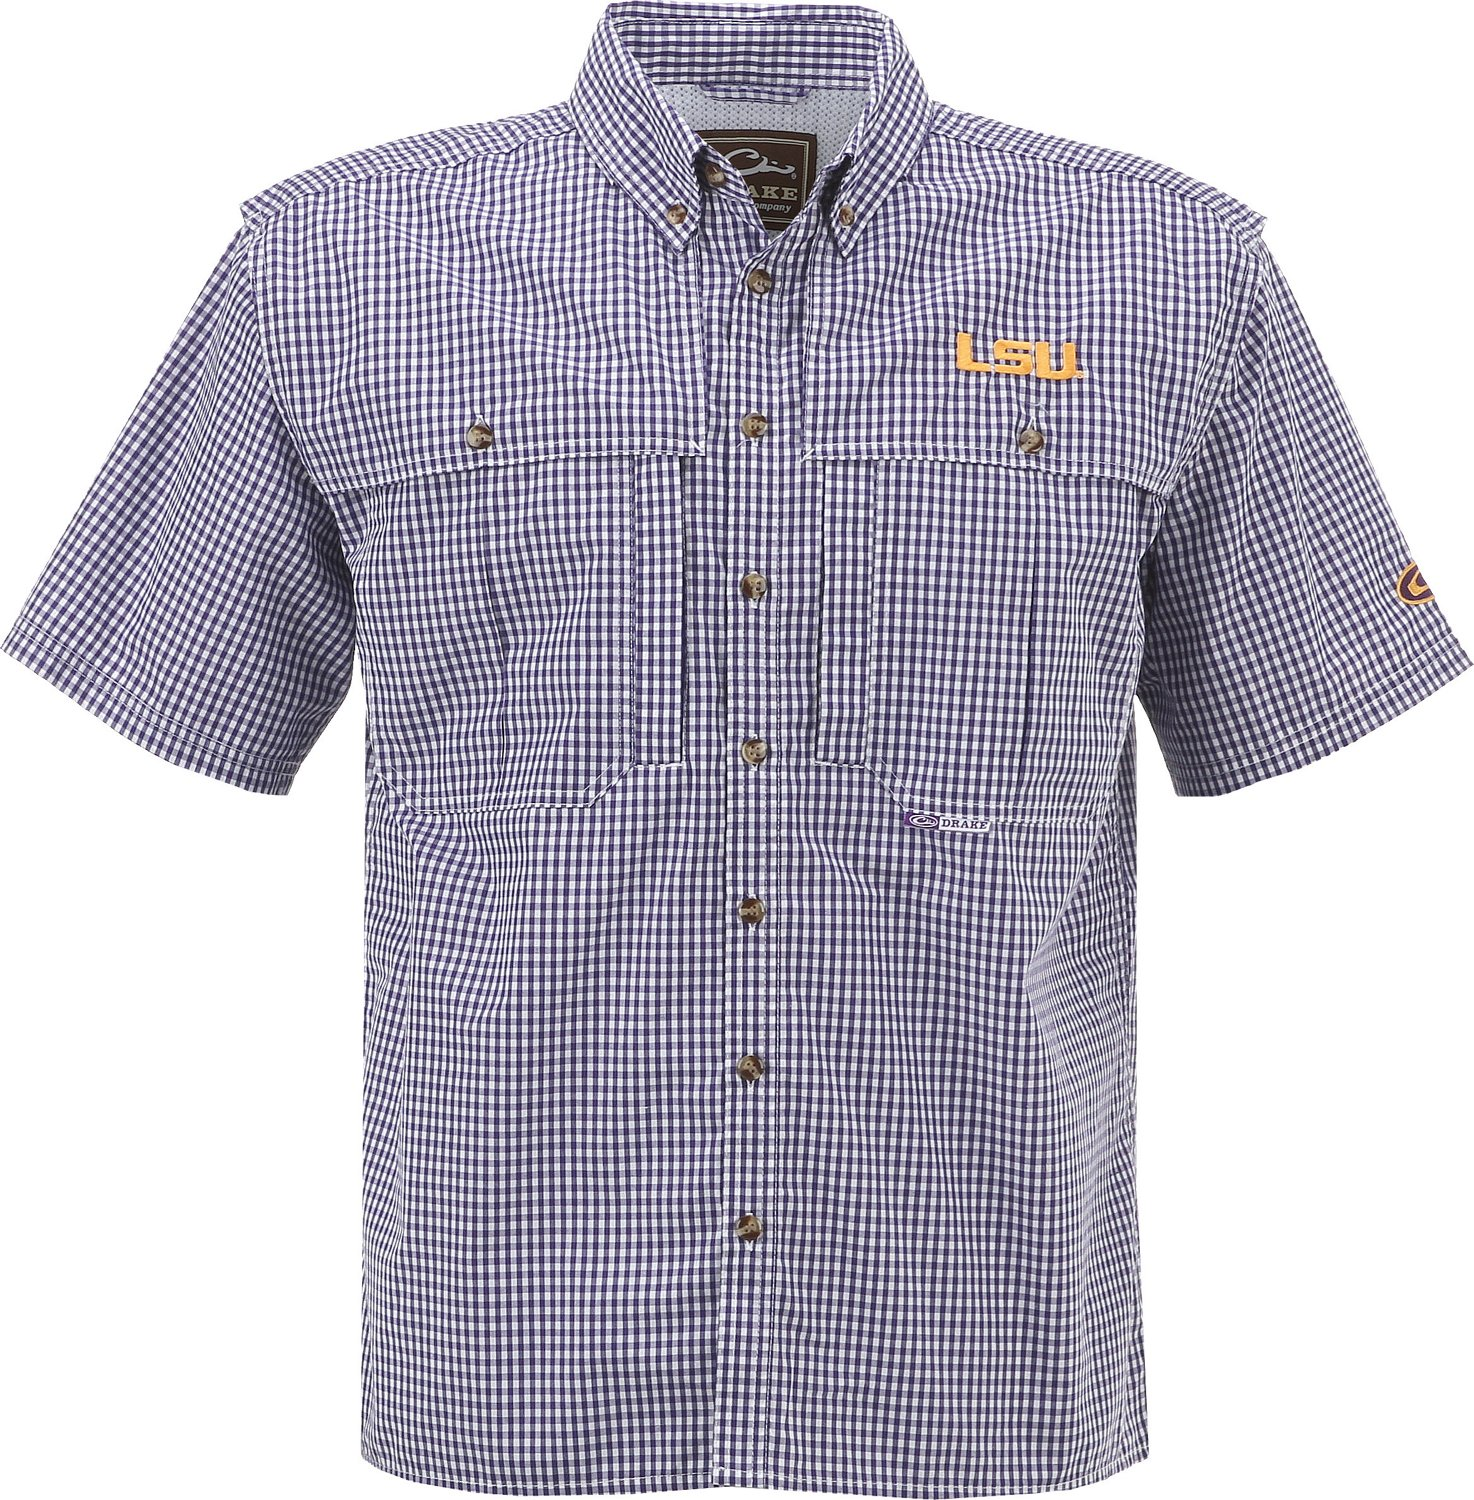 a6991e1d1a4c Display product reviews for Drake Waterfowl Men's Louisiana State  University Gameday Wingshooter's Short Sleeve Shirt